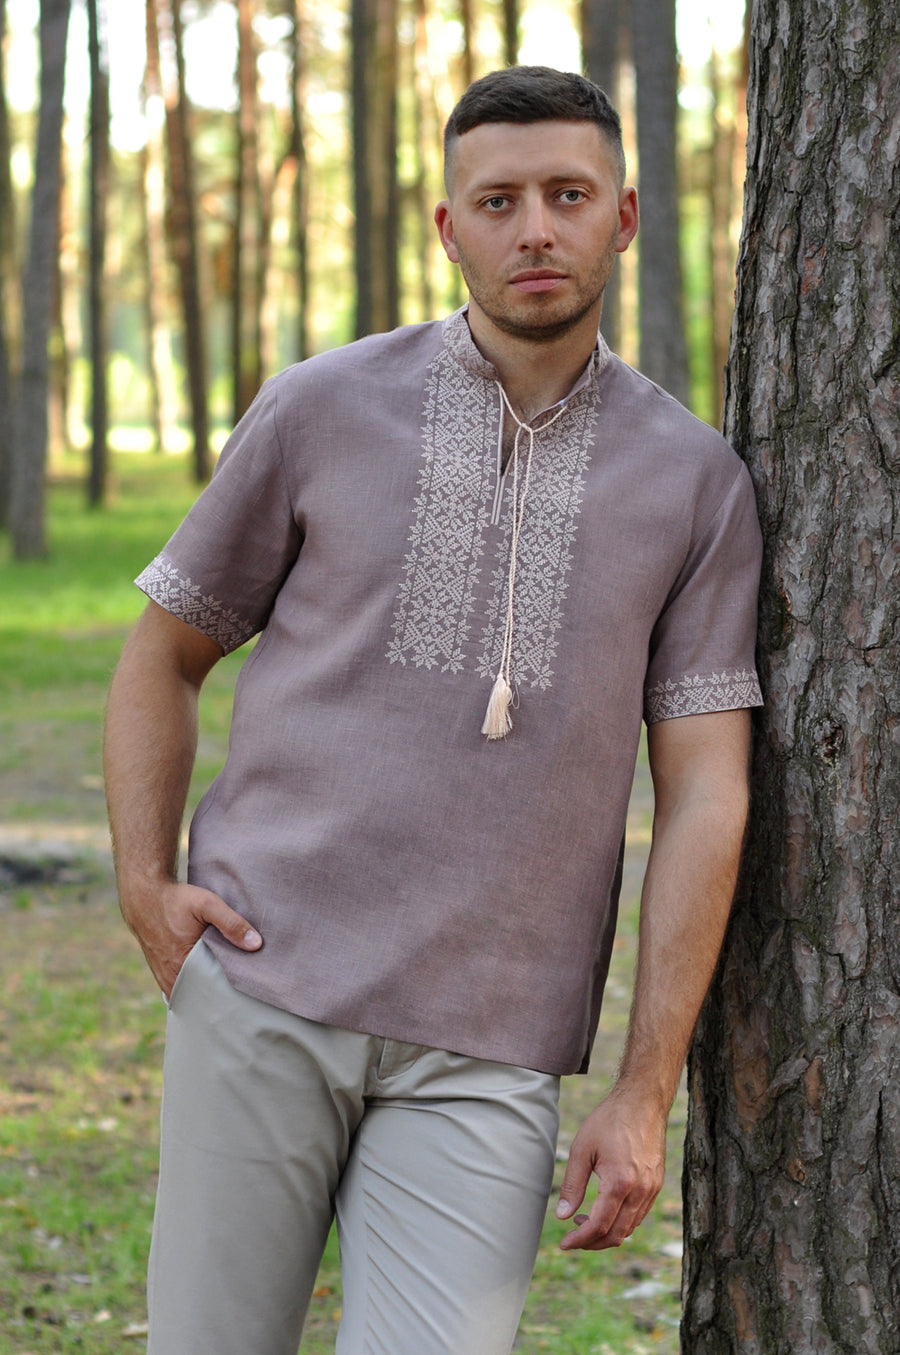 Linen embroidered short sleeve shirt for a stylish man